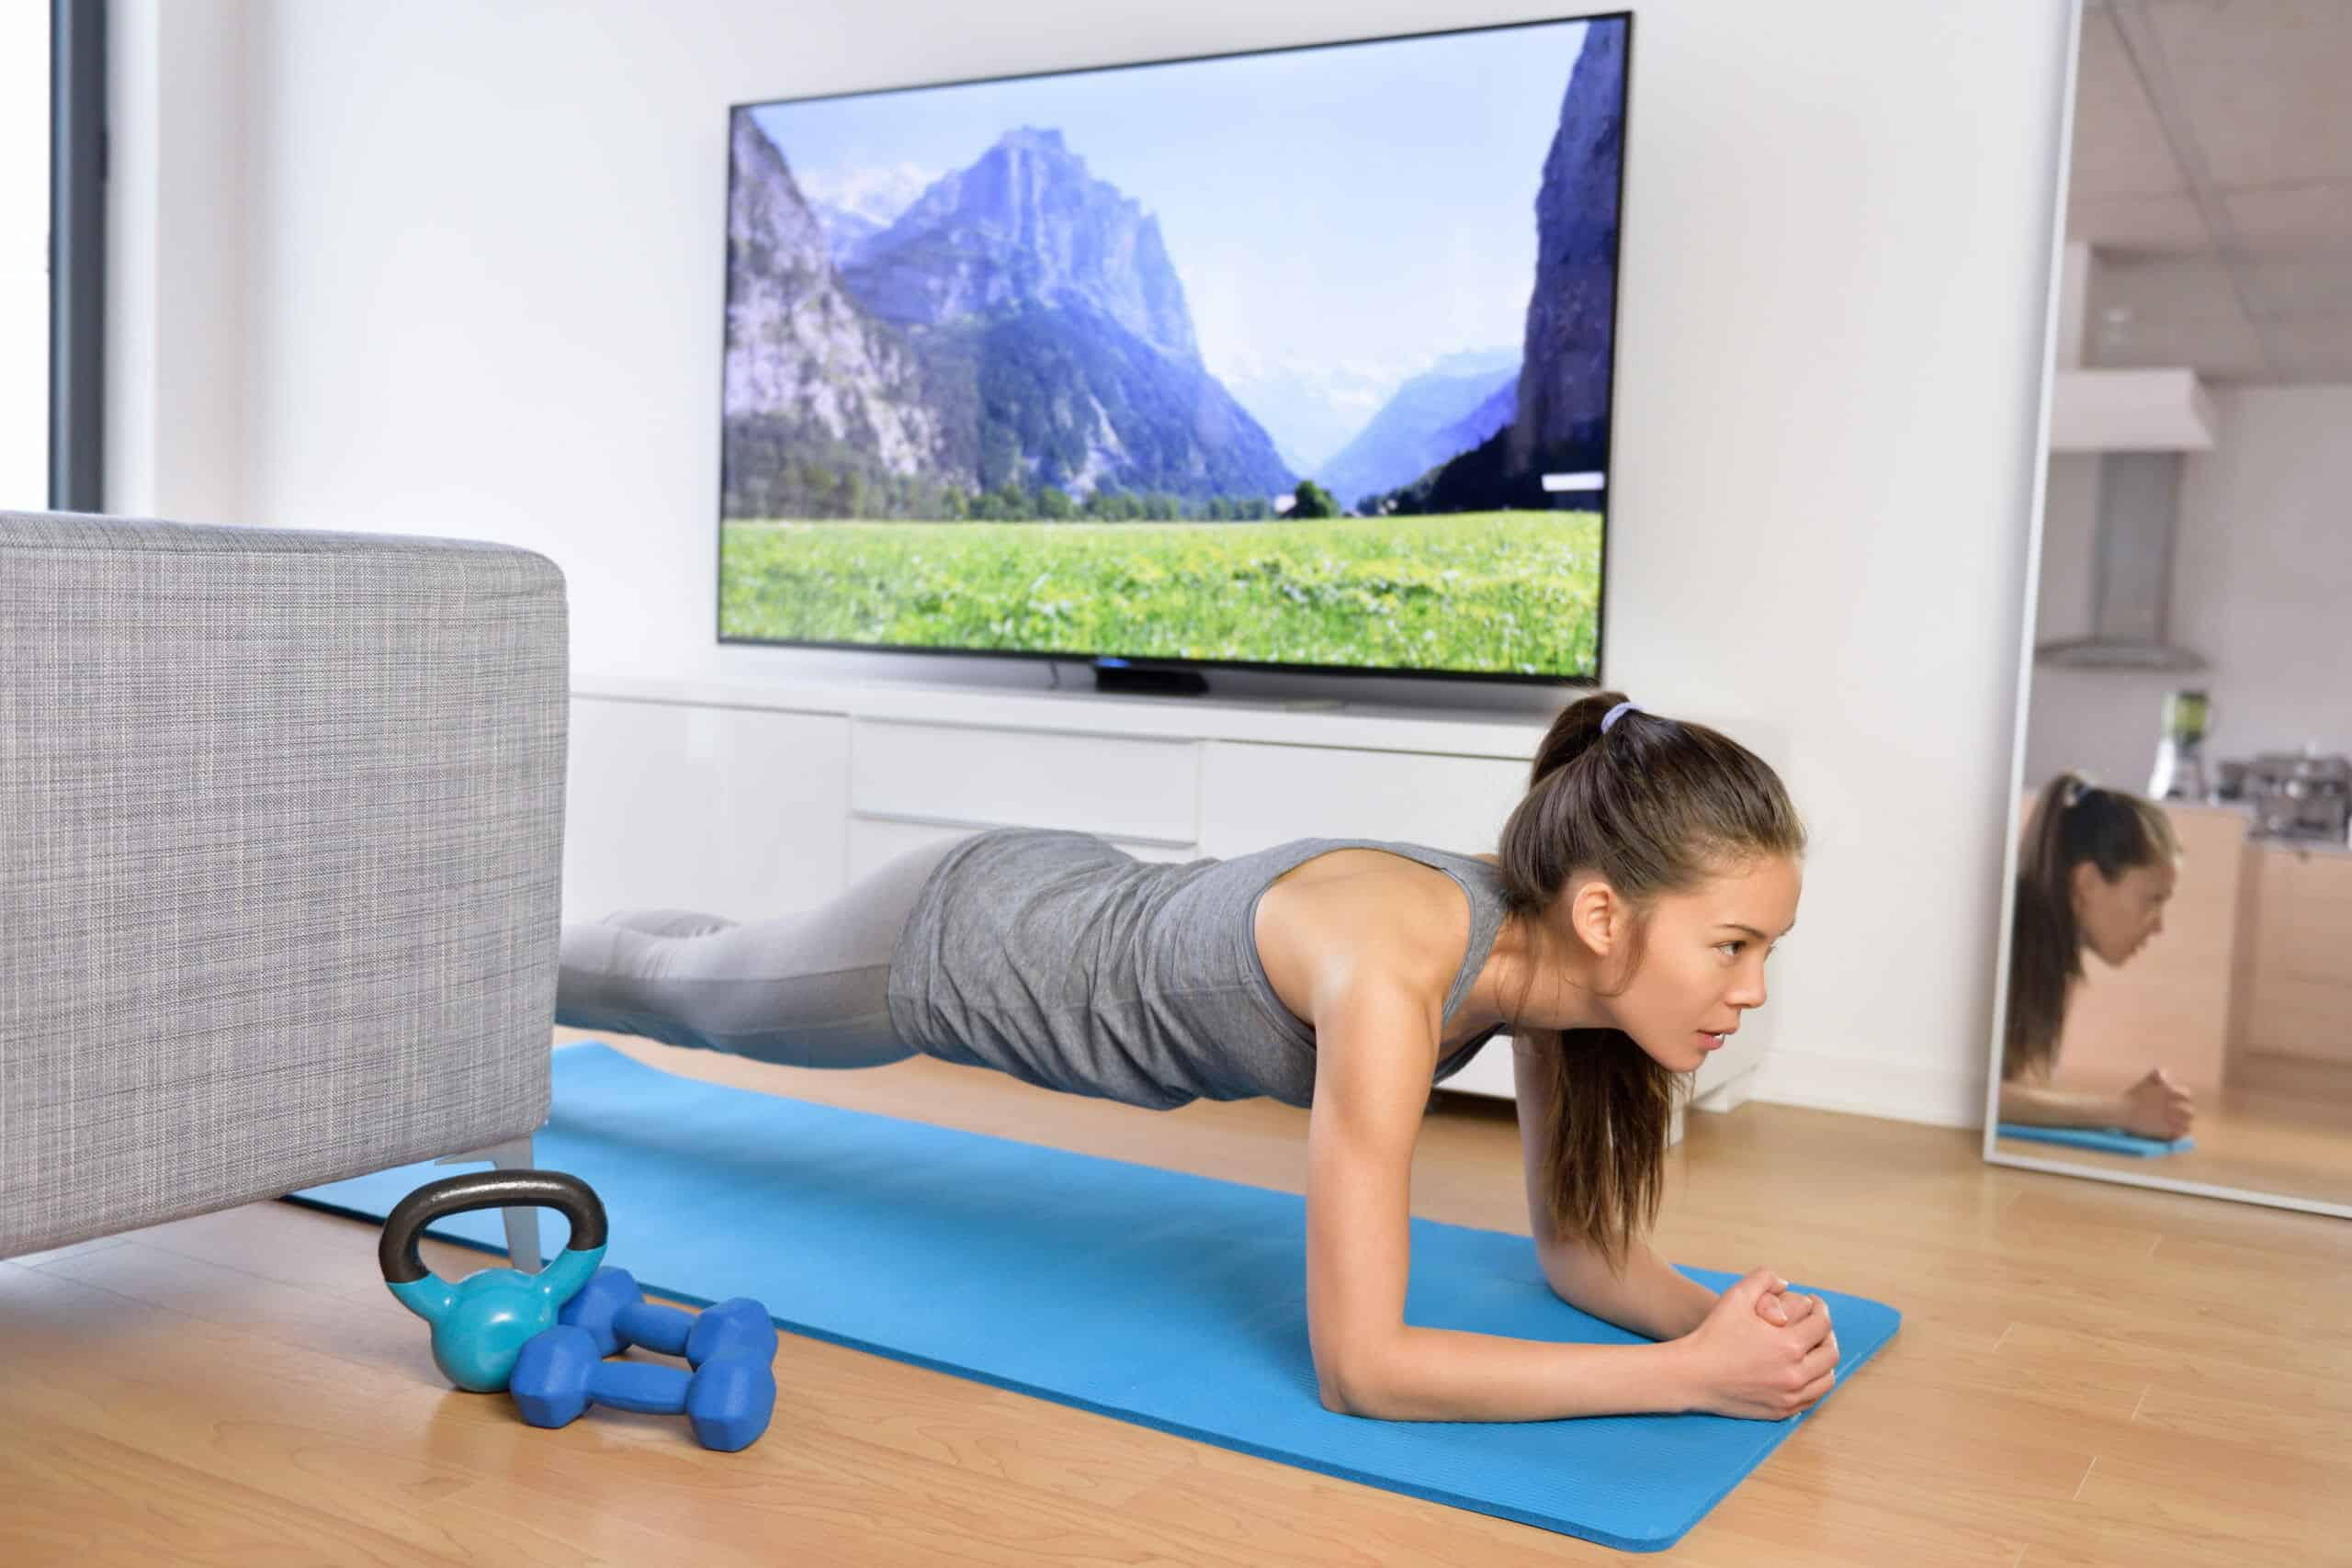 Core Exercises For Women Strengthen Your Core With These Simple Exercises!